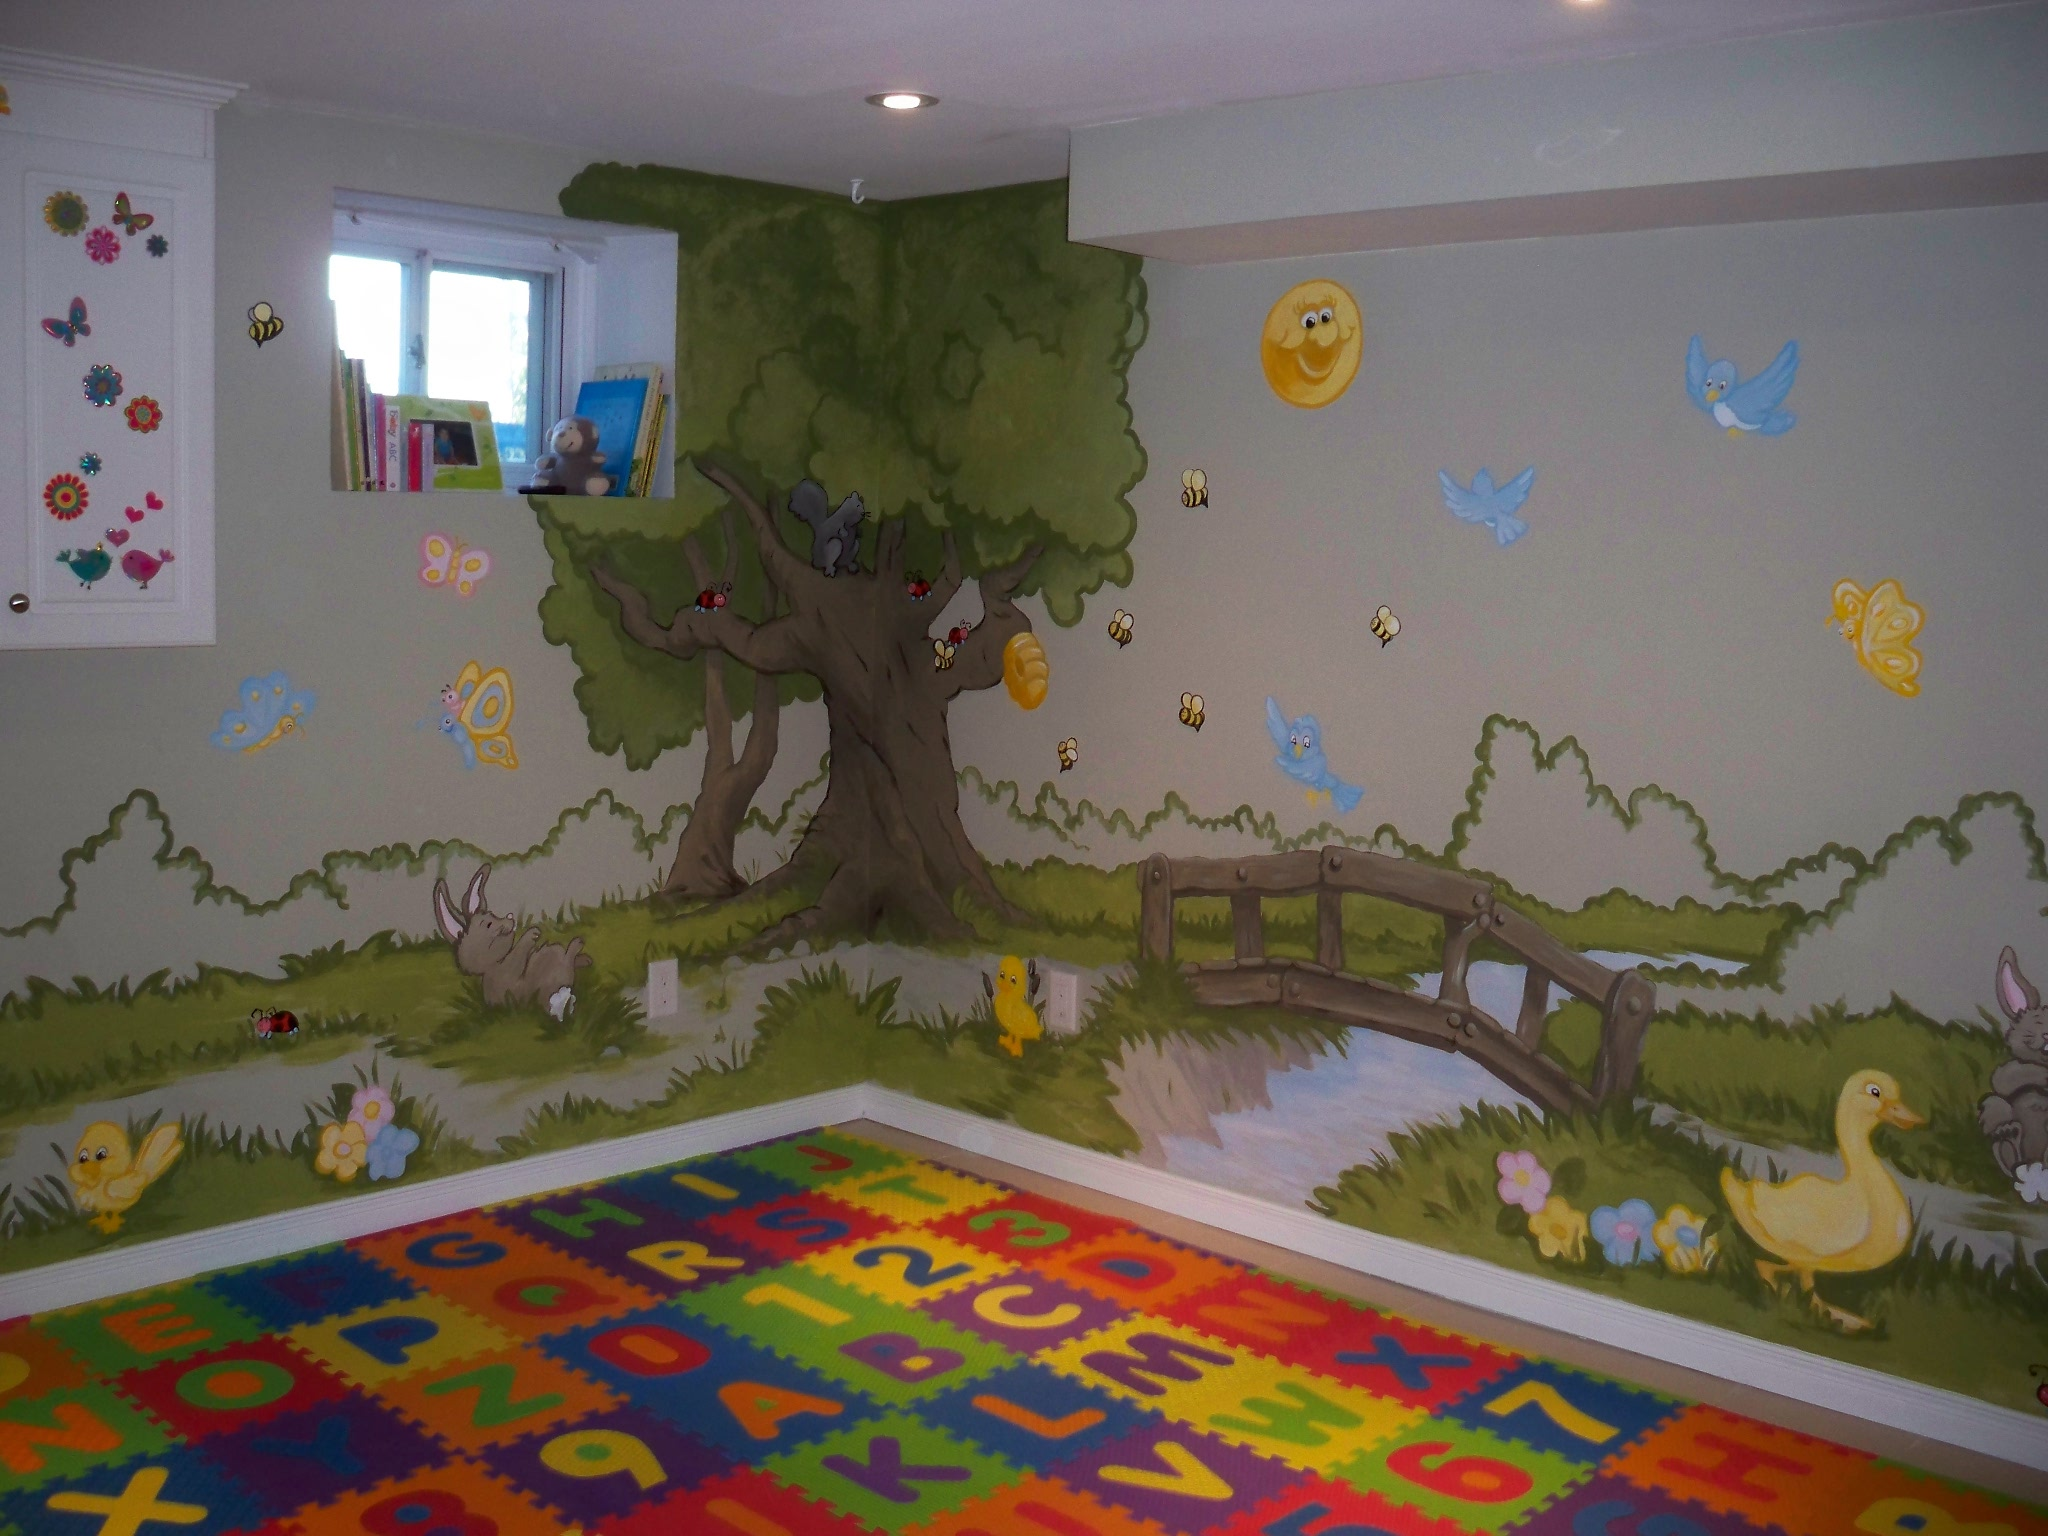 Murals By Marg Genevieve's Playroom Mural 5.JPG